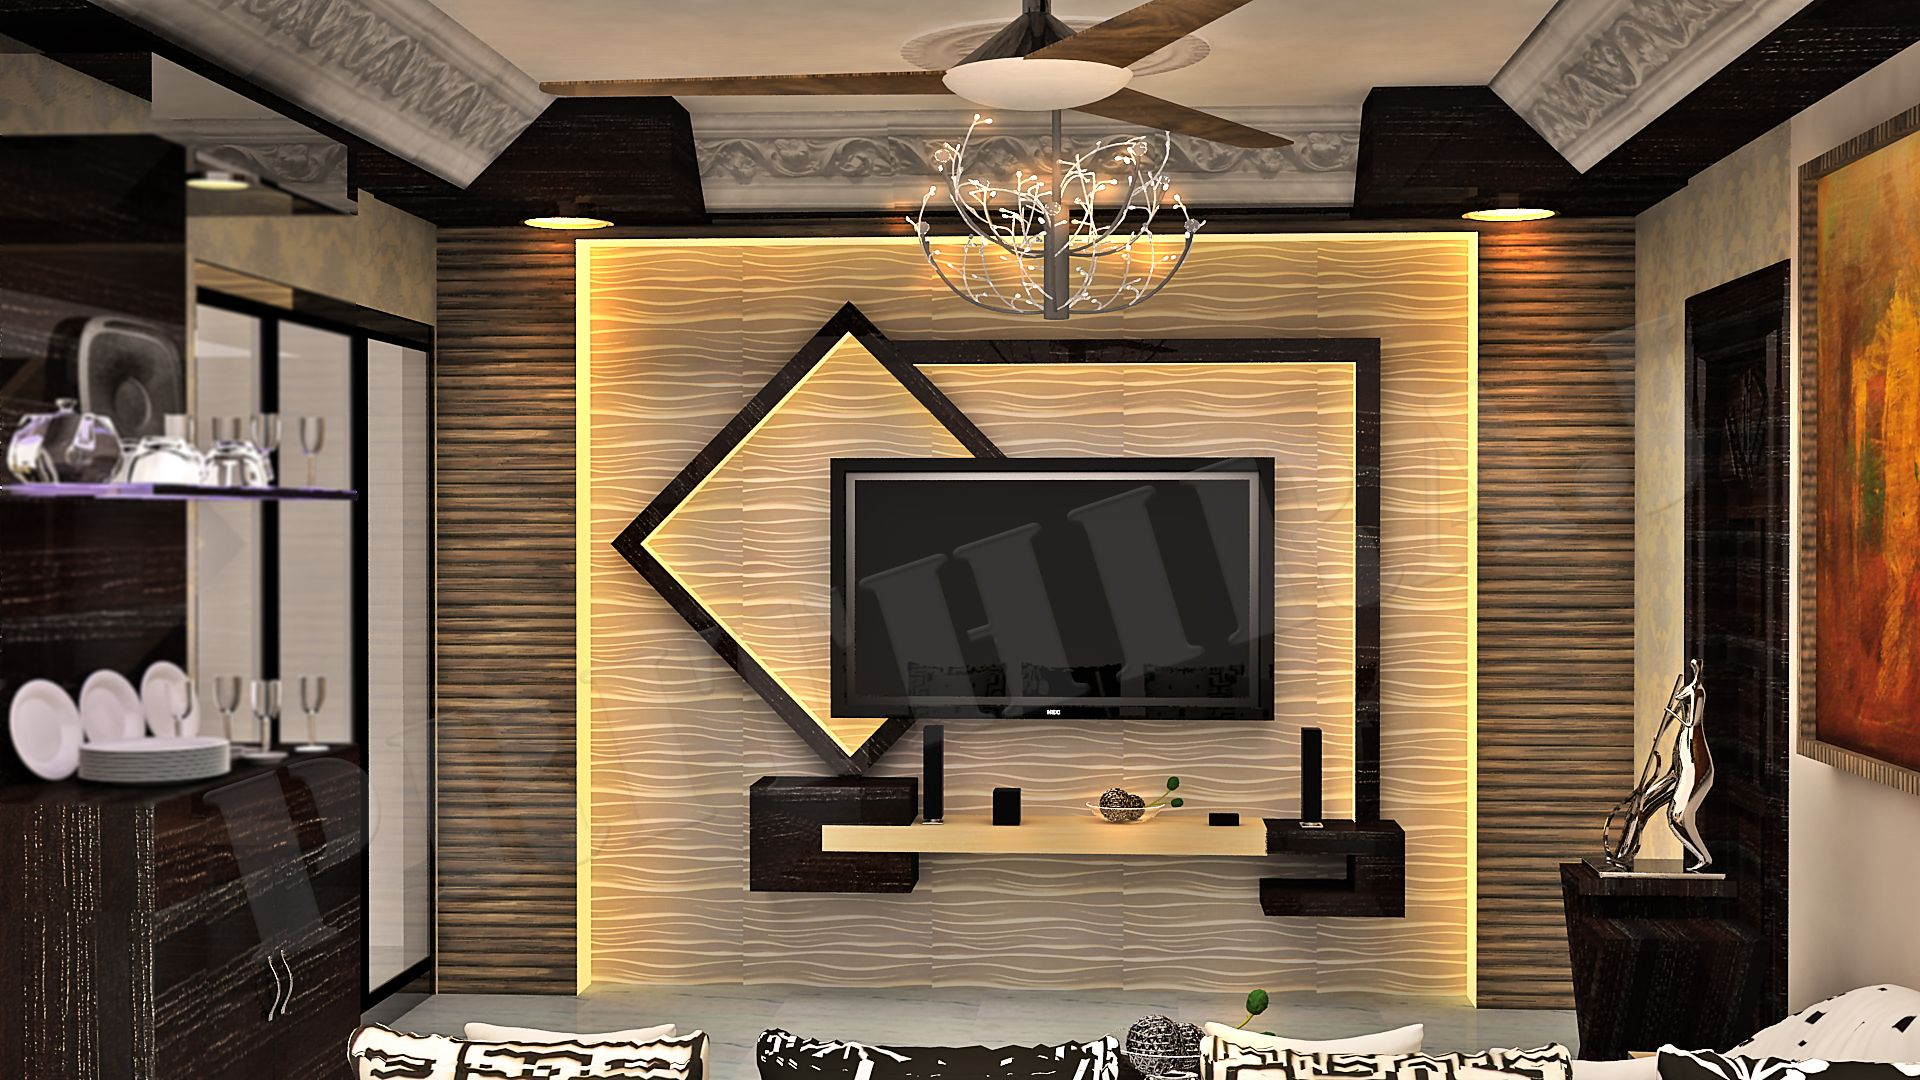 Pin by Prithiraj Paladhy on My designs  Tv room design, Lcd wall